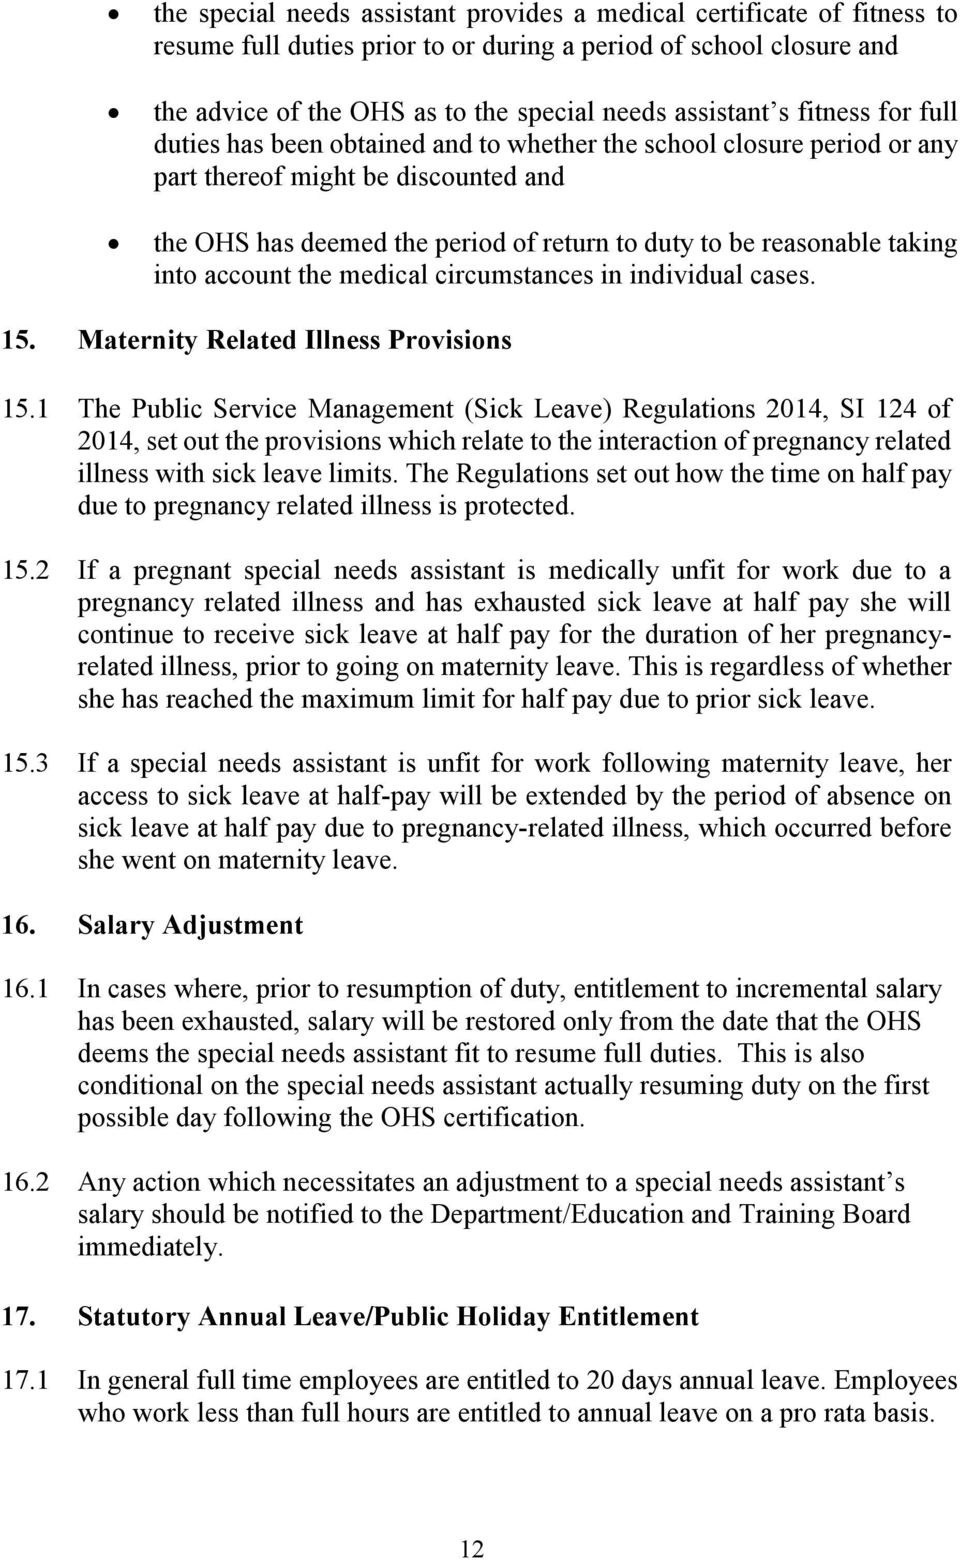 into account the medical circumstances in individual cases. 15. Maternity Related Illness Provisions 15.